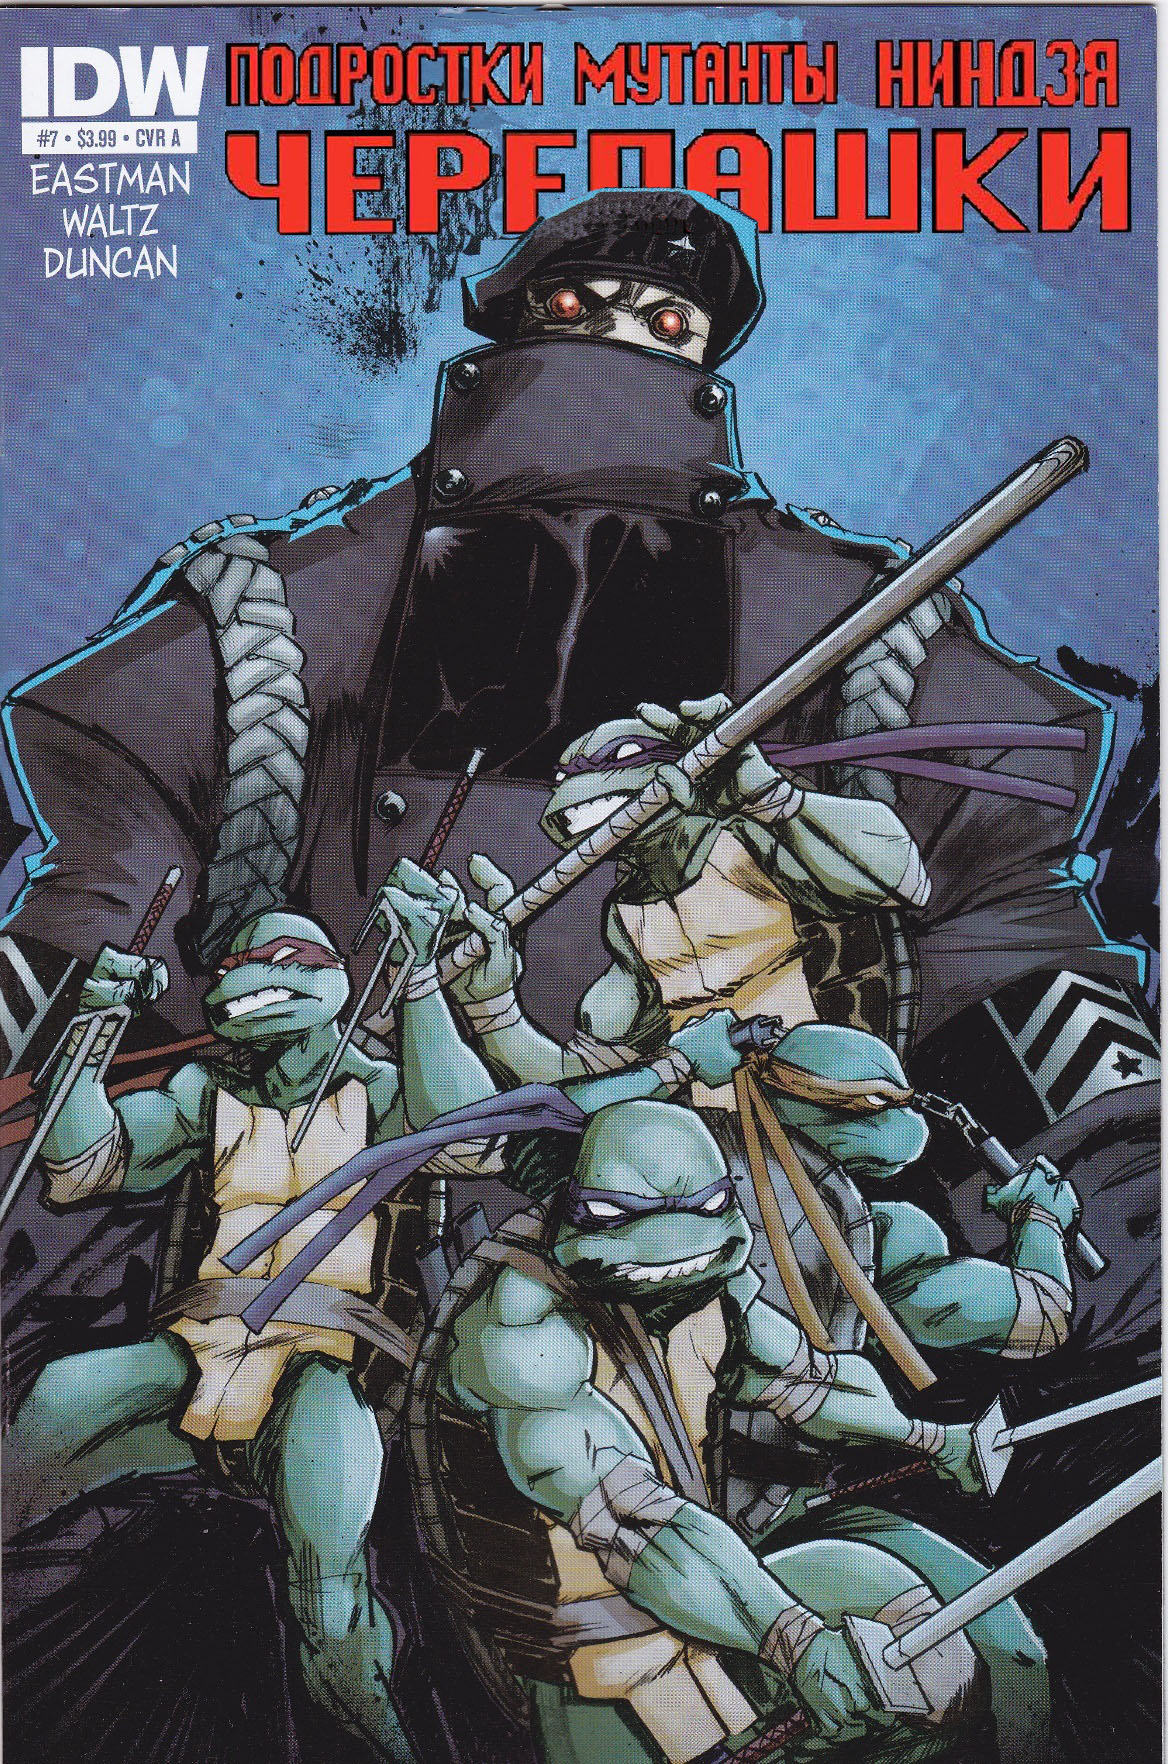 TMNT from IDW, issue 7 (cover)